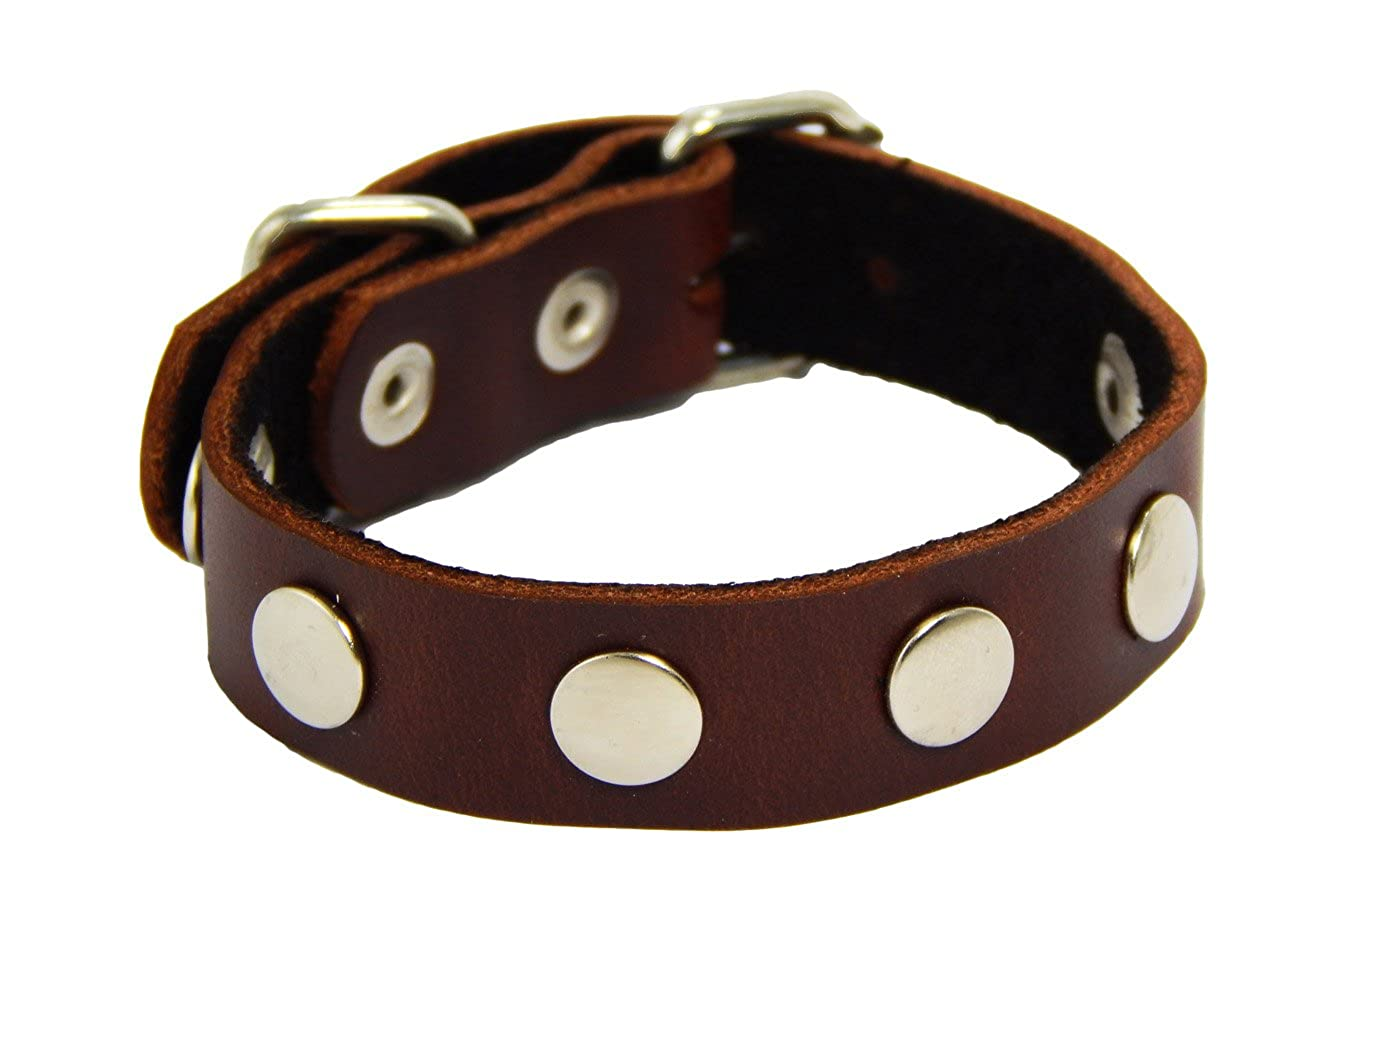 BrownBeans, Casual Wear Fashion Buckle Women Boys Studded Leather Bracelet (CA-LBCT12012) Casual Wear Fashion Buckle Women Boys Studded Leather Bracelet (CA-LBCT12012) (Brown)